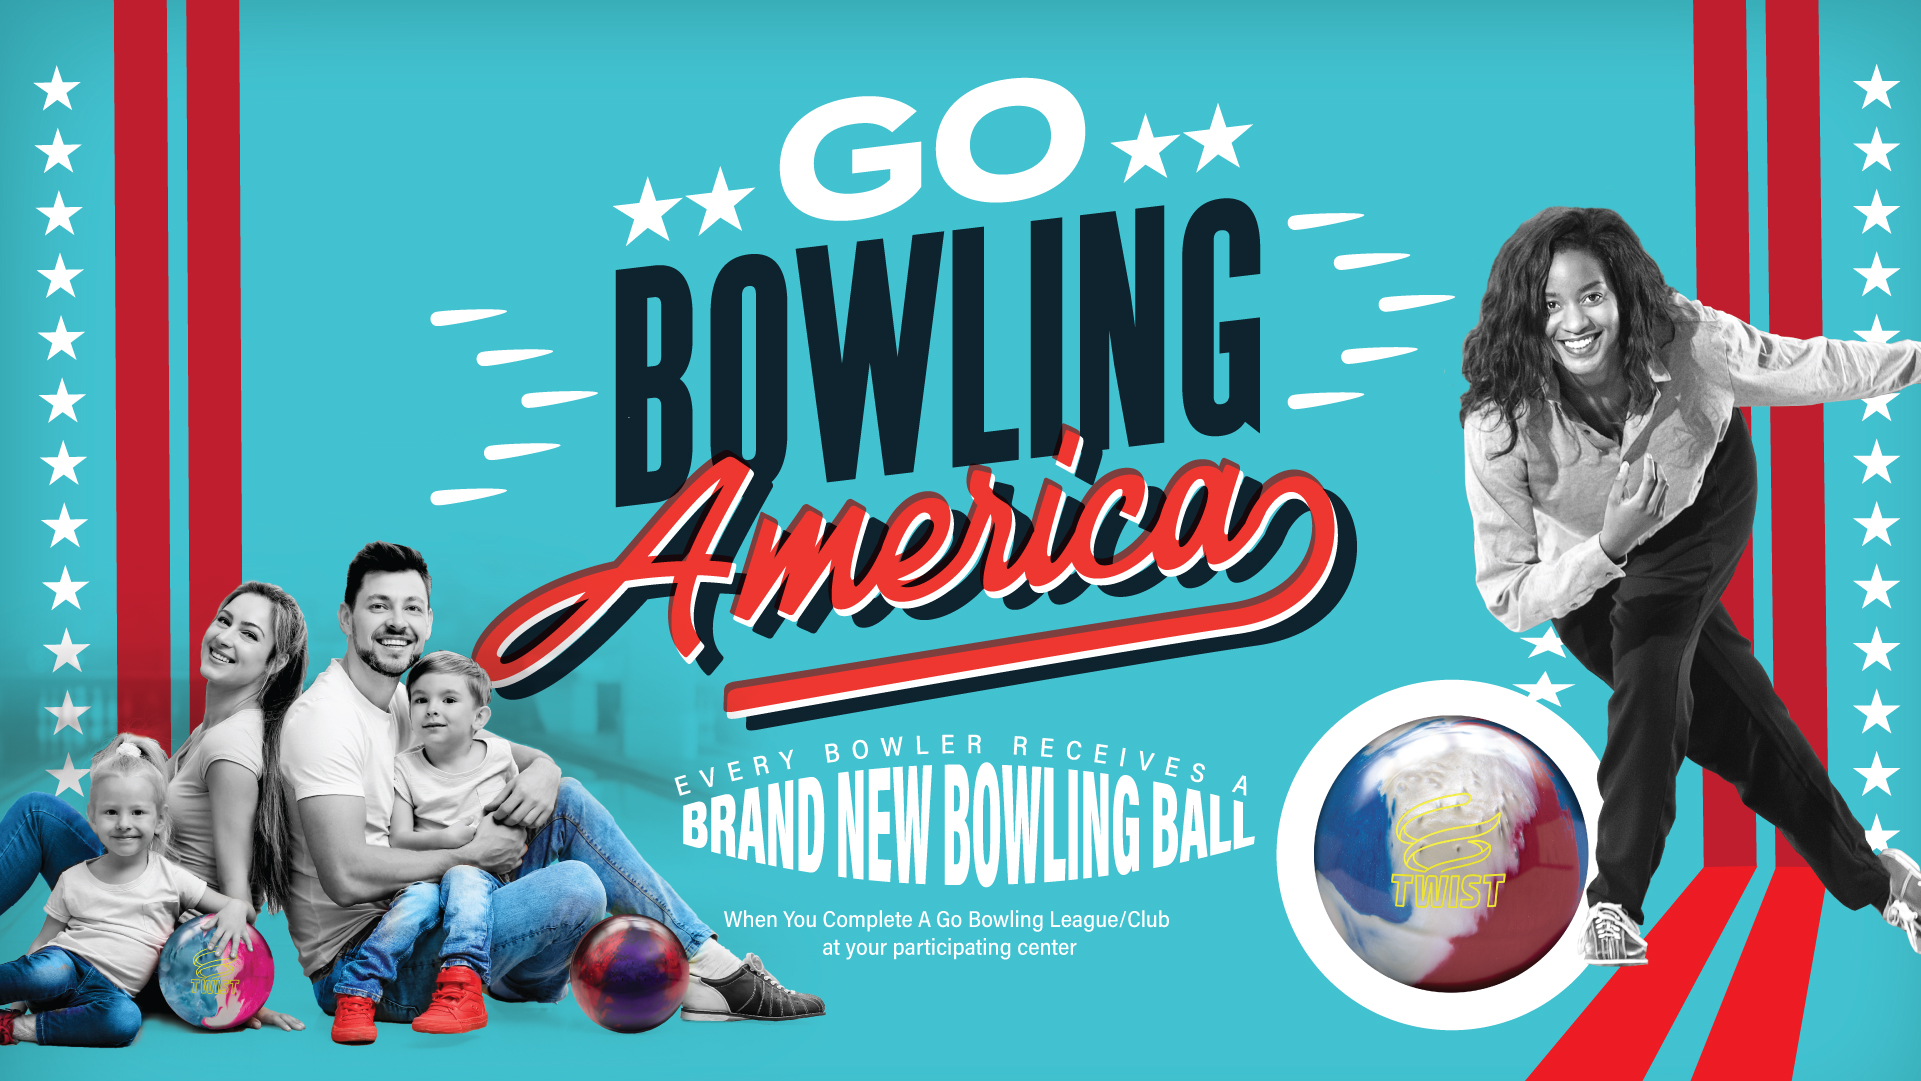 Gobowling America Banner